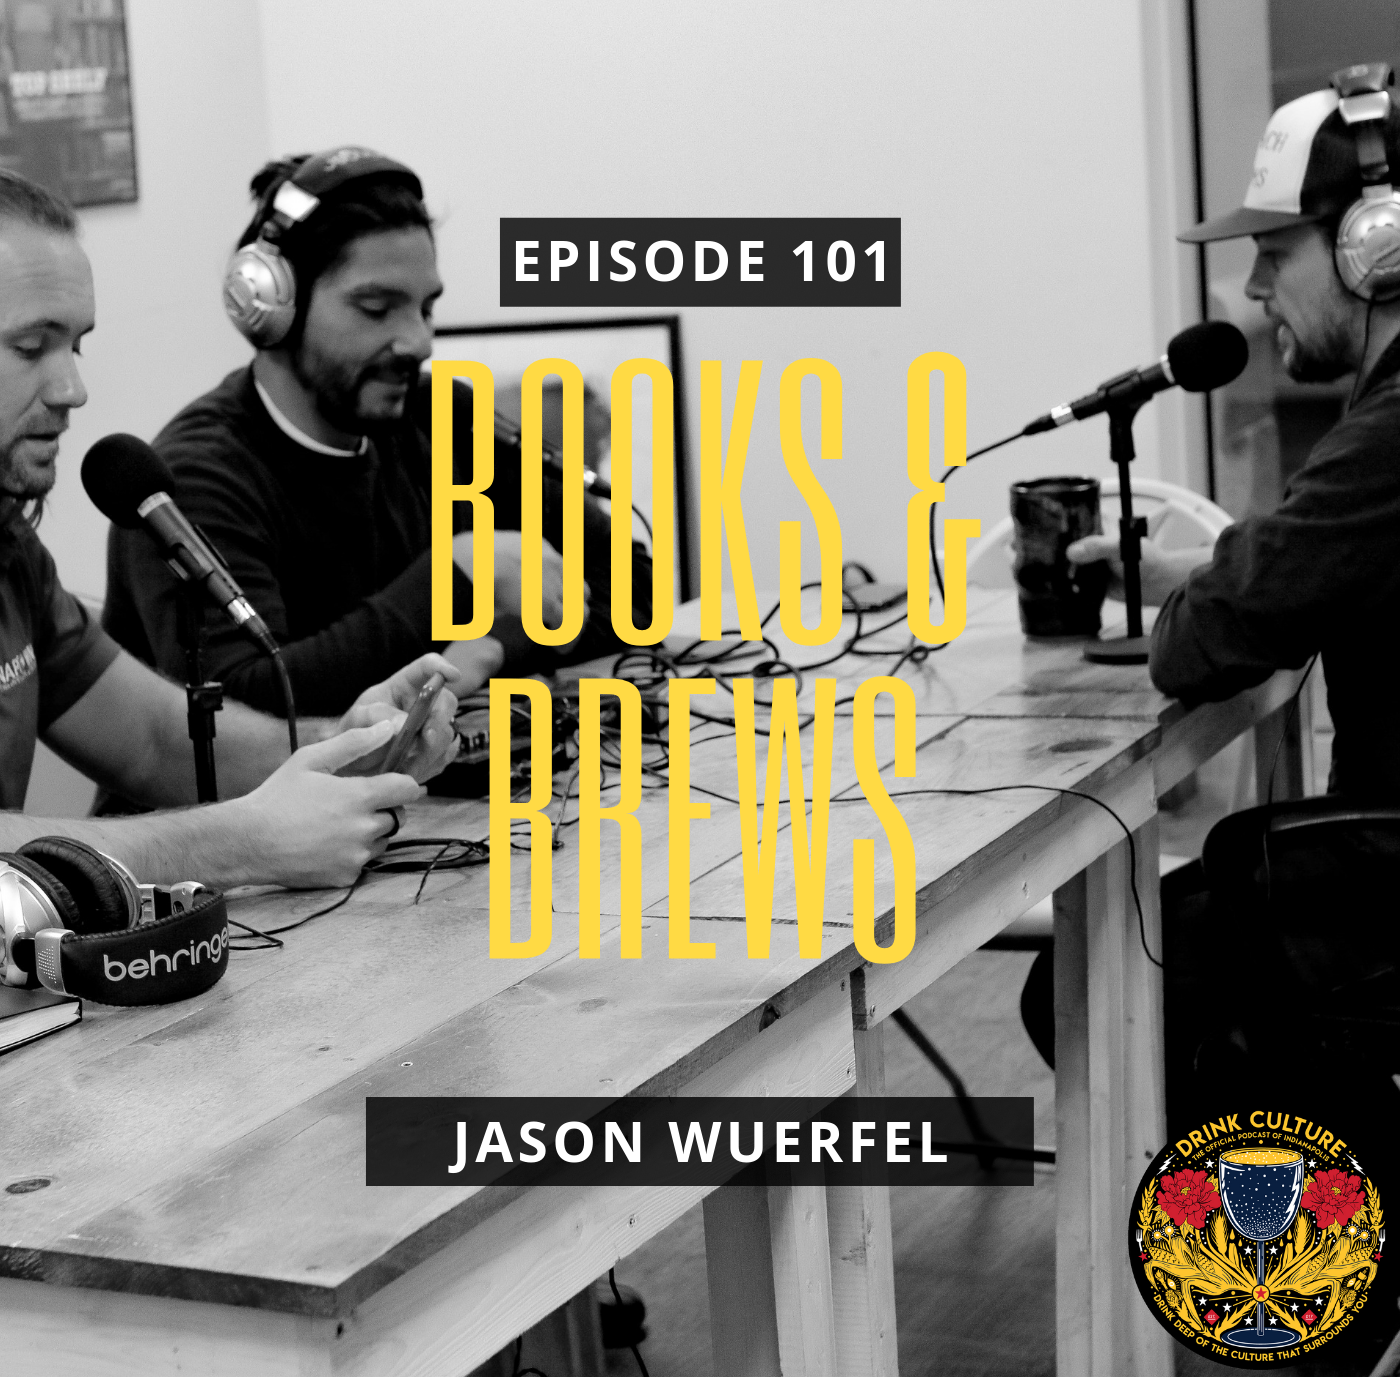 Episode 101: Books & Brews, Jason Wuerfel -